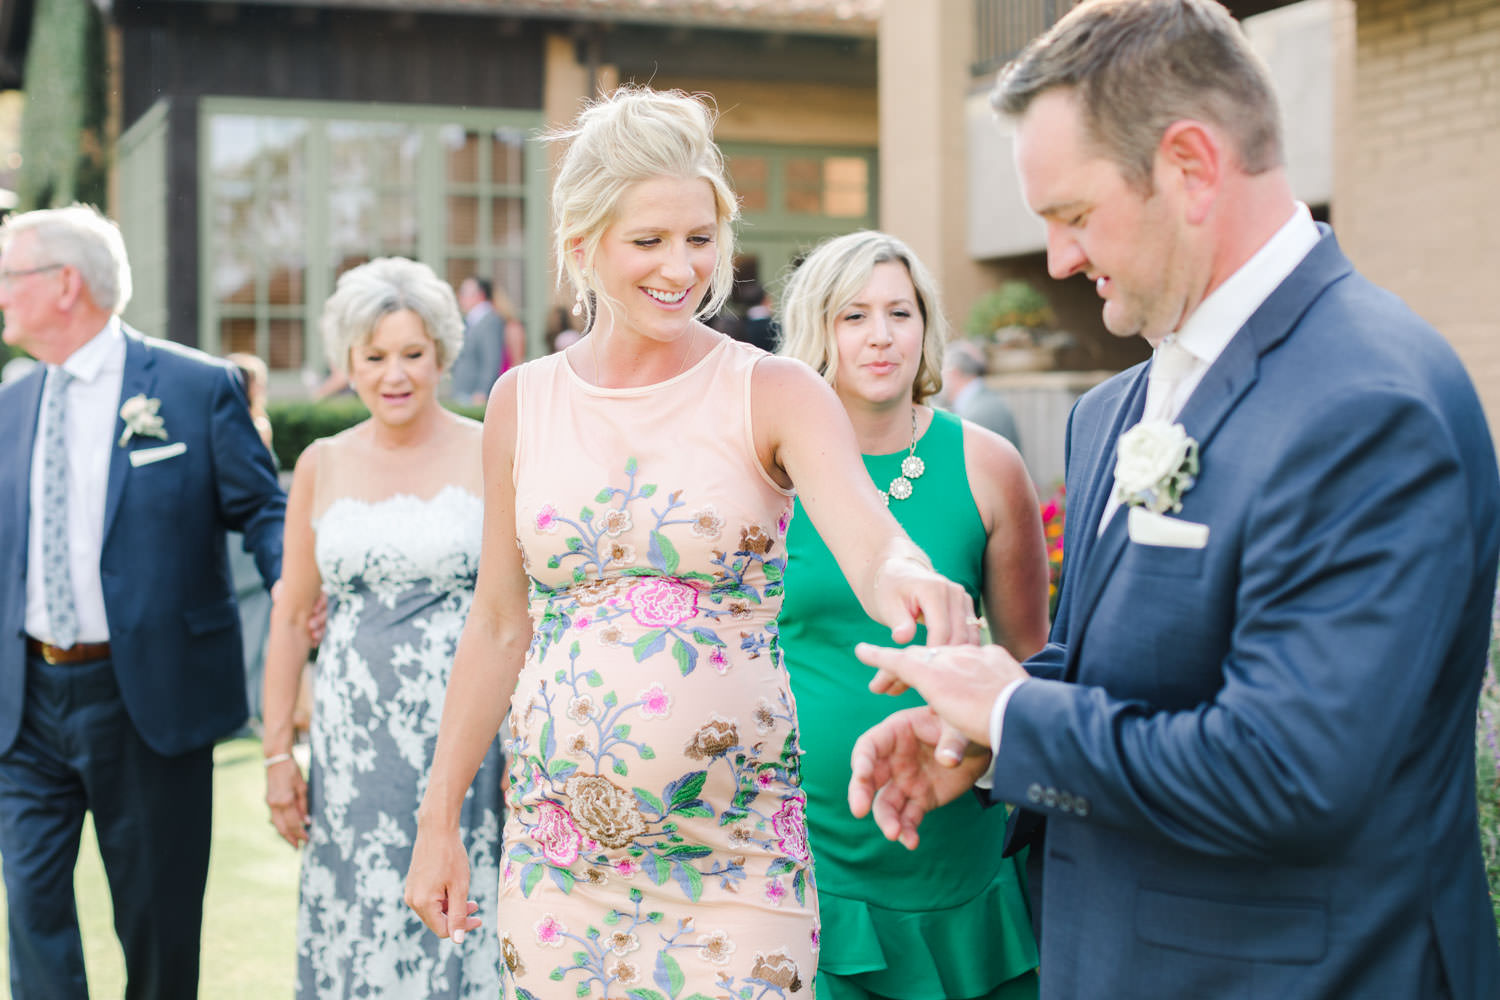 Guests looking at groom's new ring, Cavin Elizabeth Photography